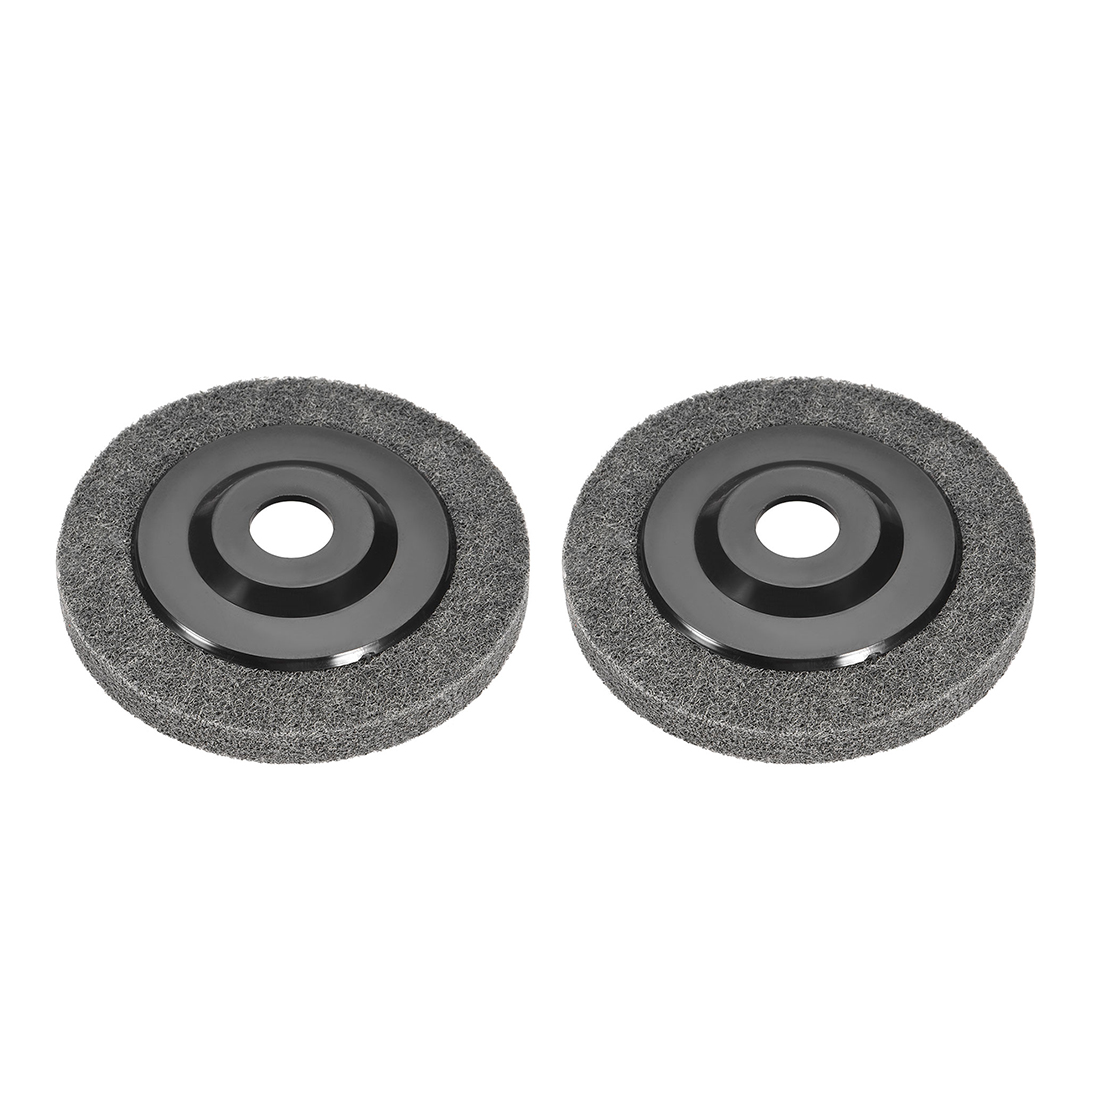 5 Inch Polishing Wheel Buffing Pad Felt Disc for 100 Angle Grinders Black 2pcs